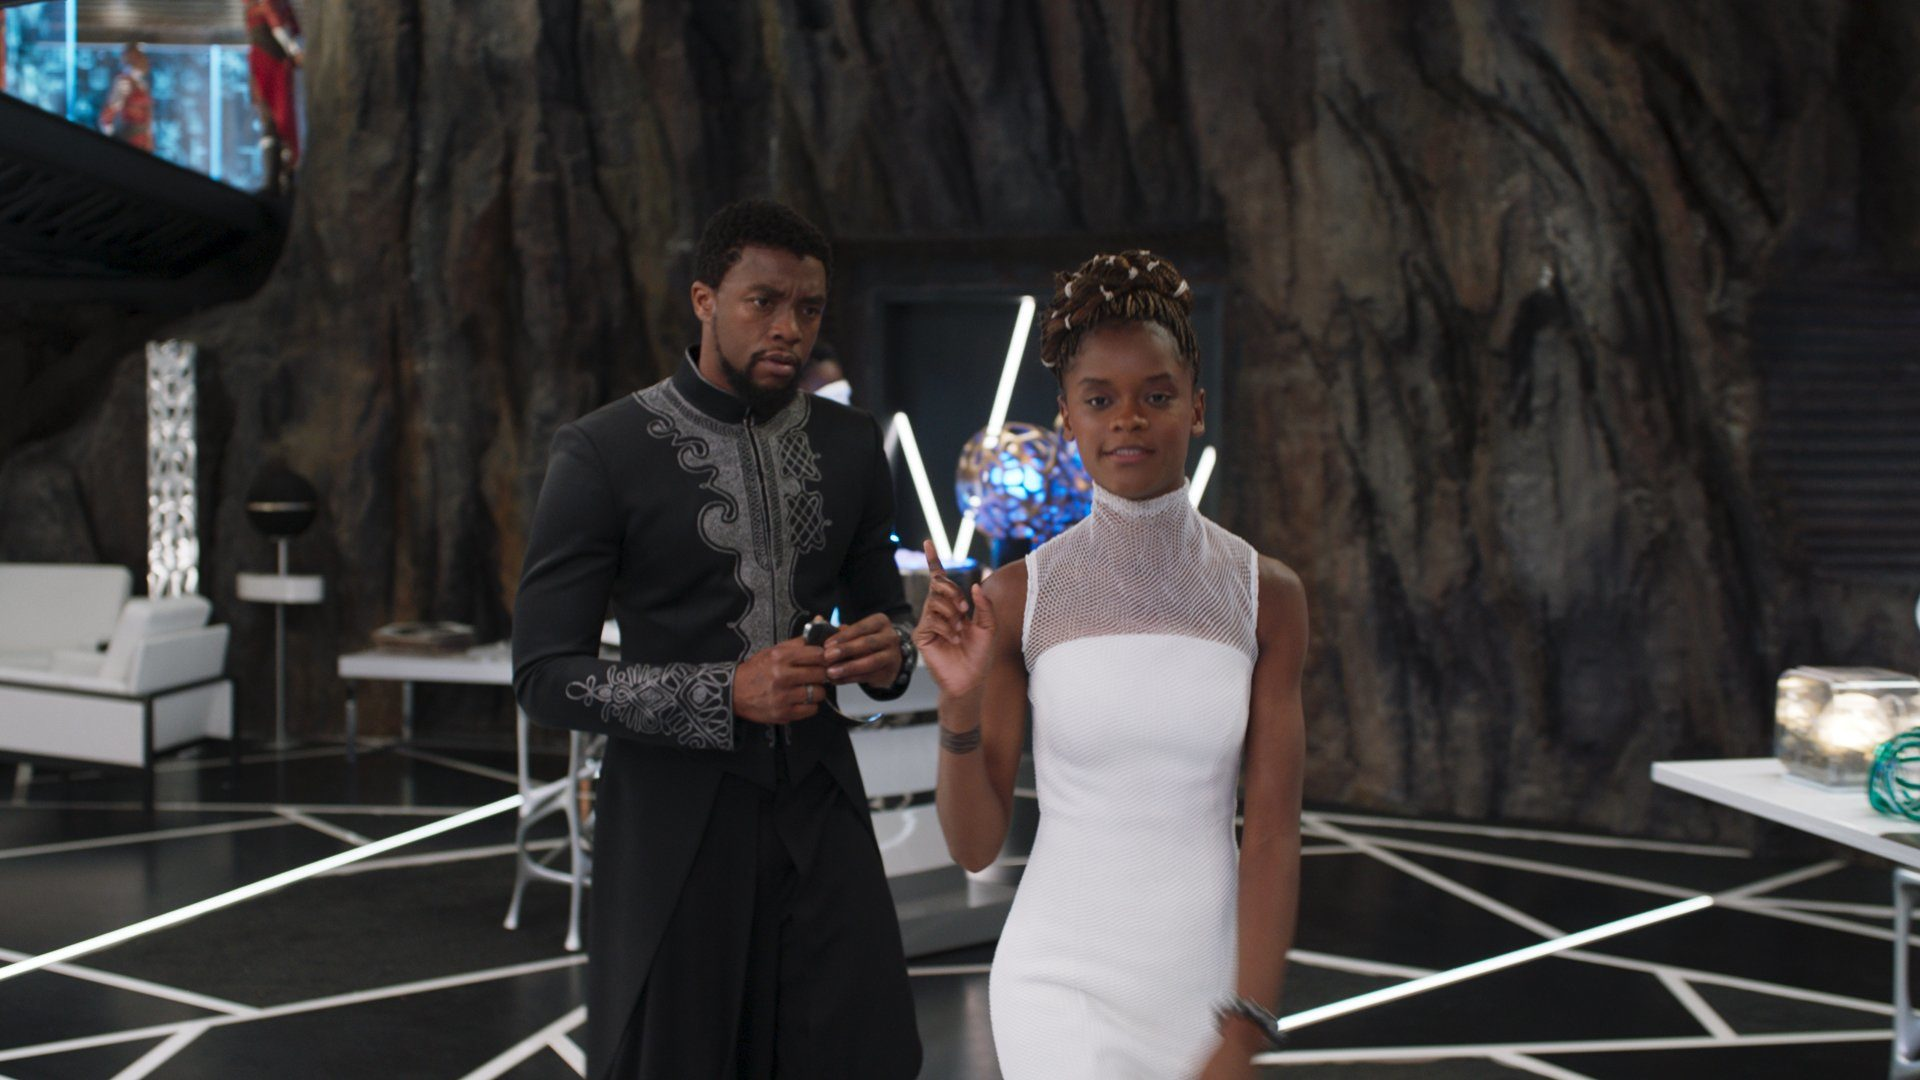 'Black Panther' Wins At the Box Office Again, Becomes 7th Highest Grossing Film In U.S. History